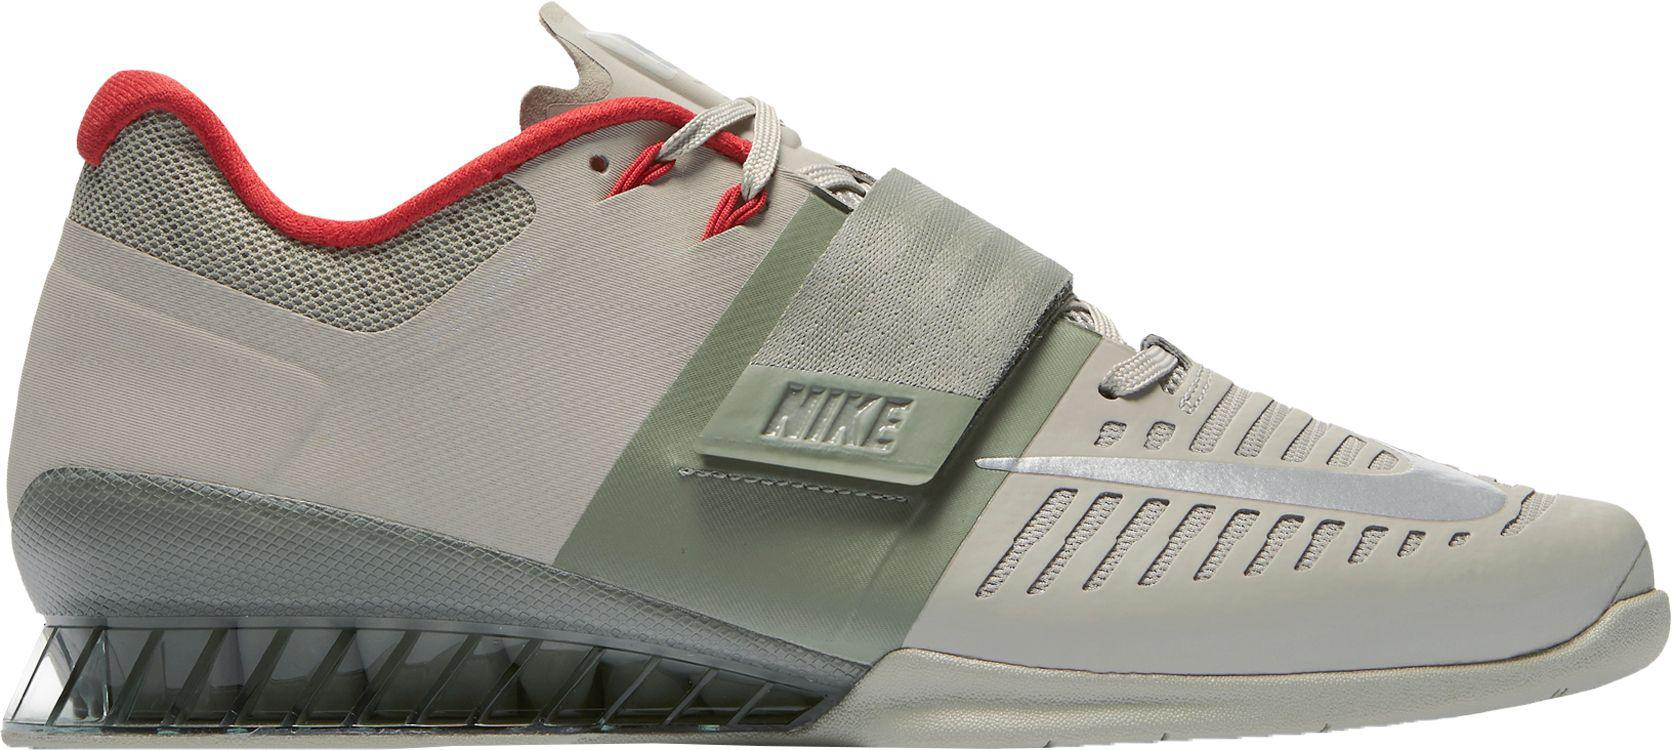 Nike Romaleos 3 Weightlifting Shoe for